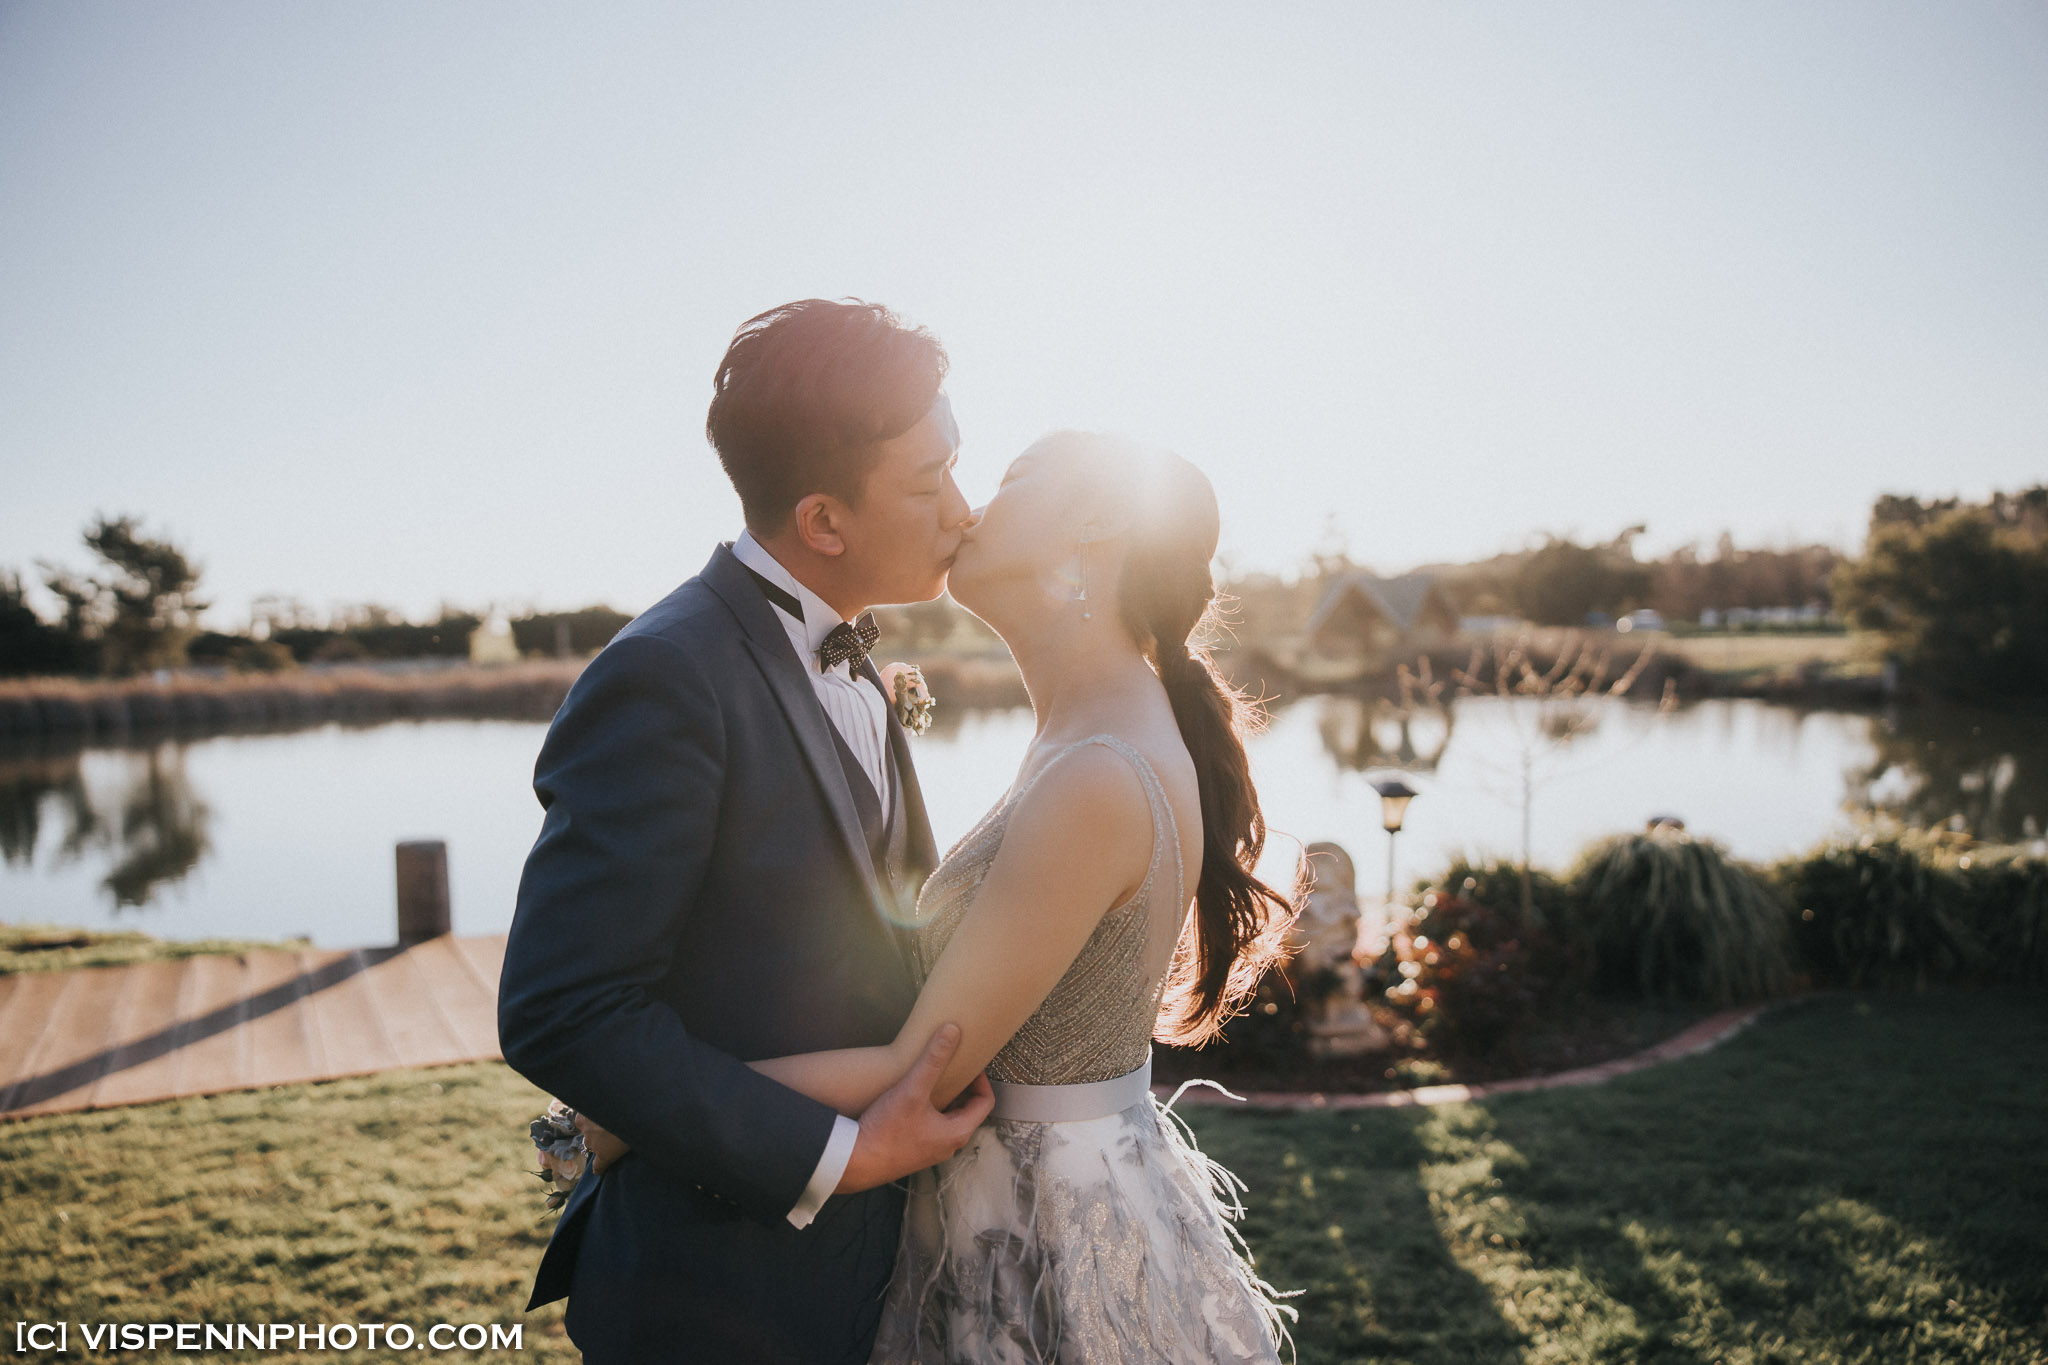 WEDDING DAY Photography Melbourne AndyIcyWED 9880 EOSR ZHPENN